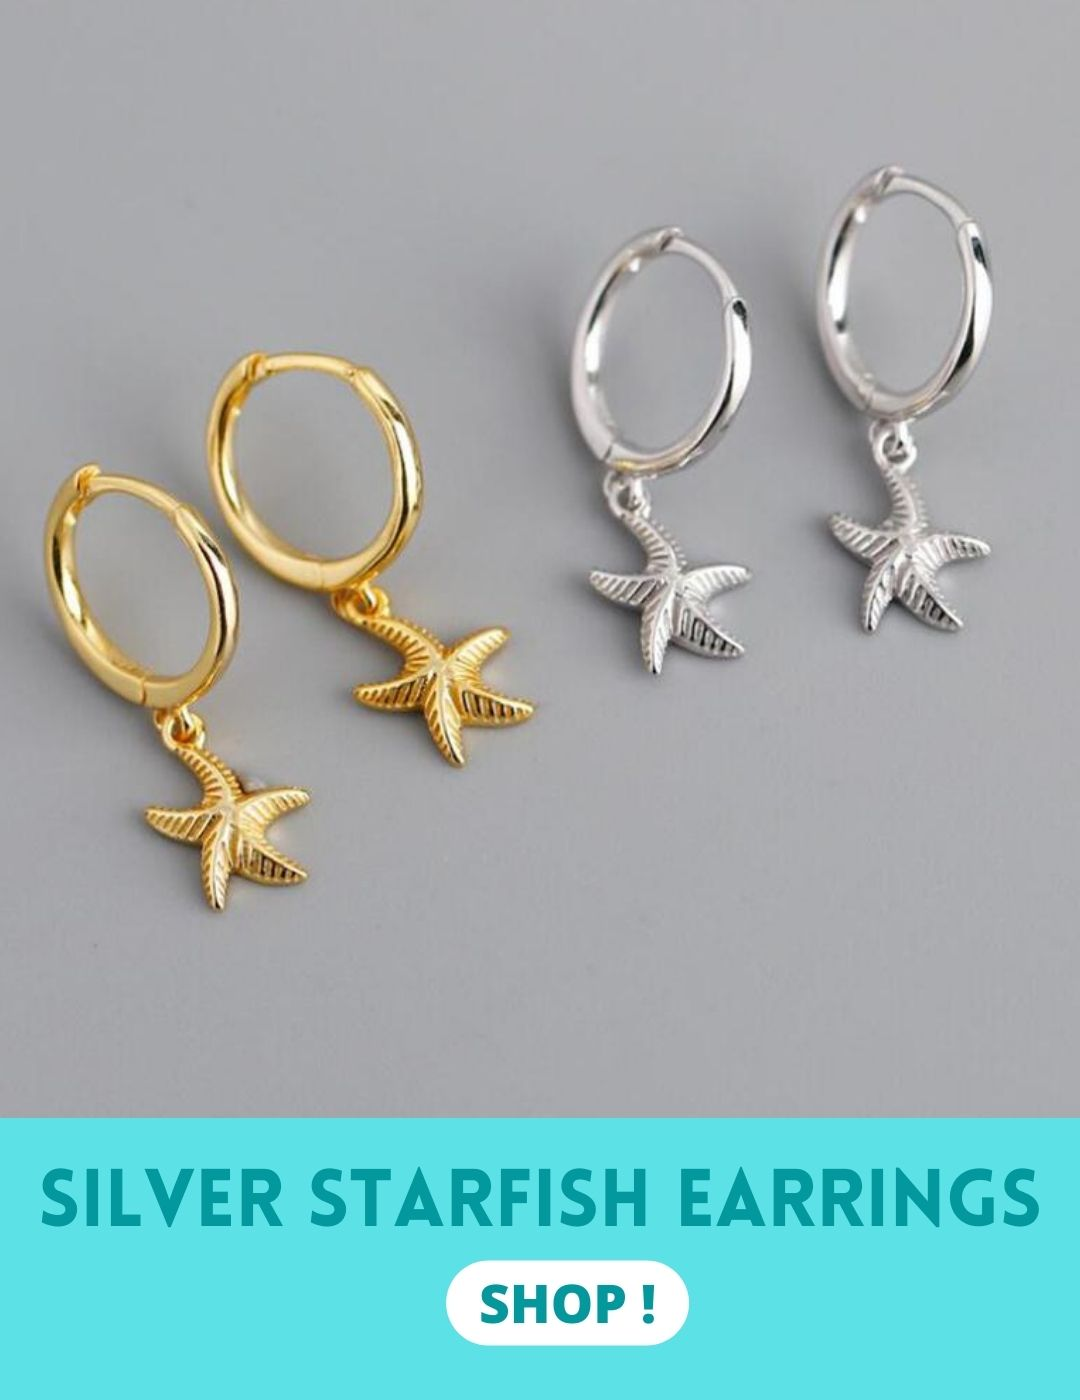 Meaning of starfish jewelry